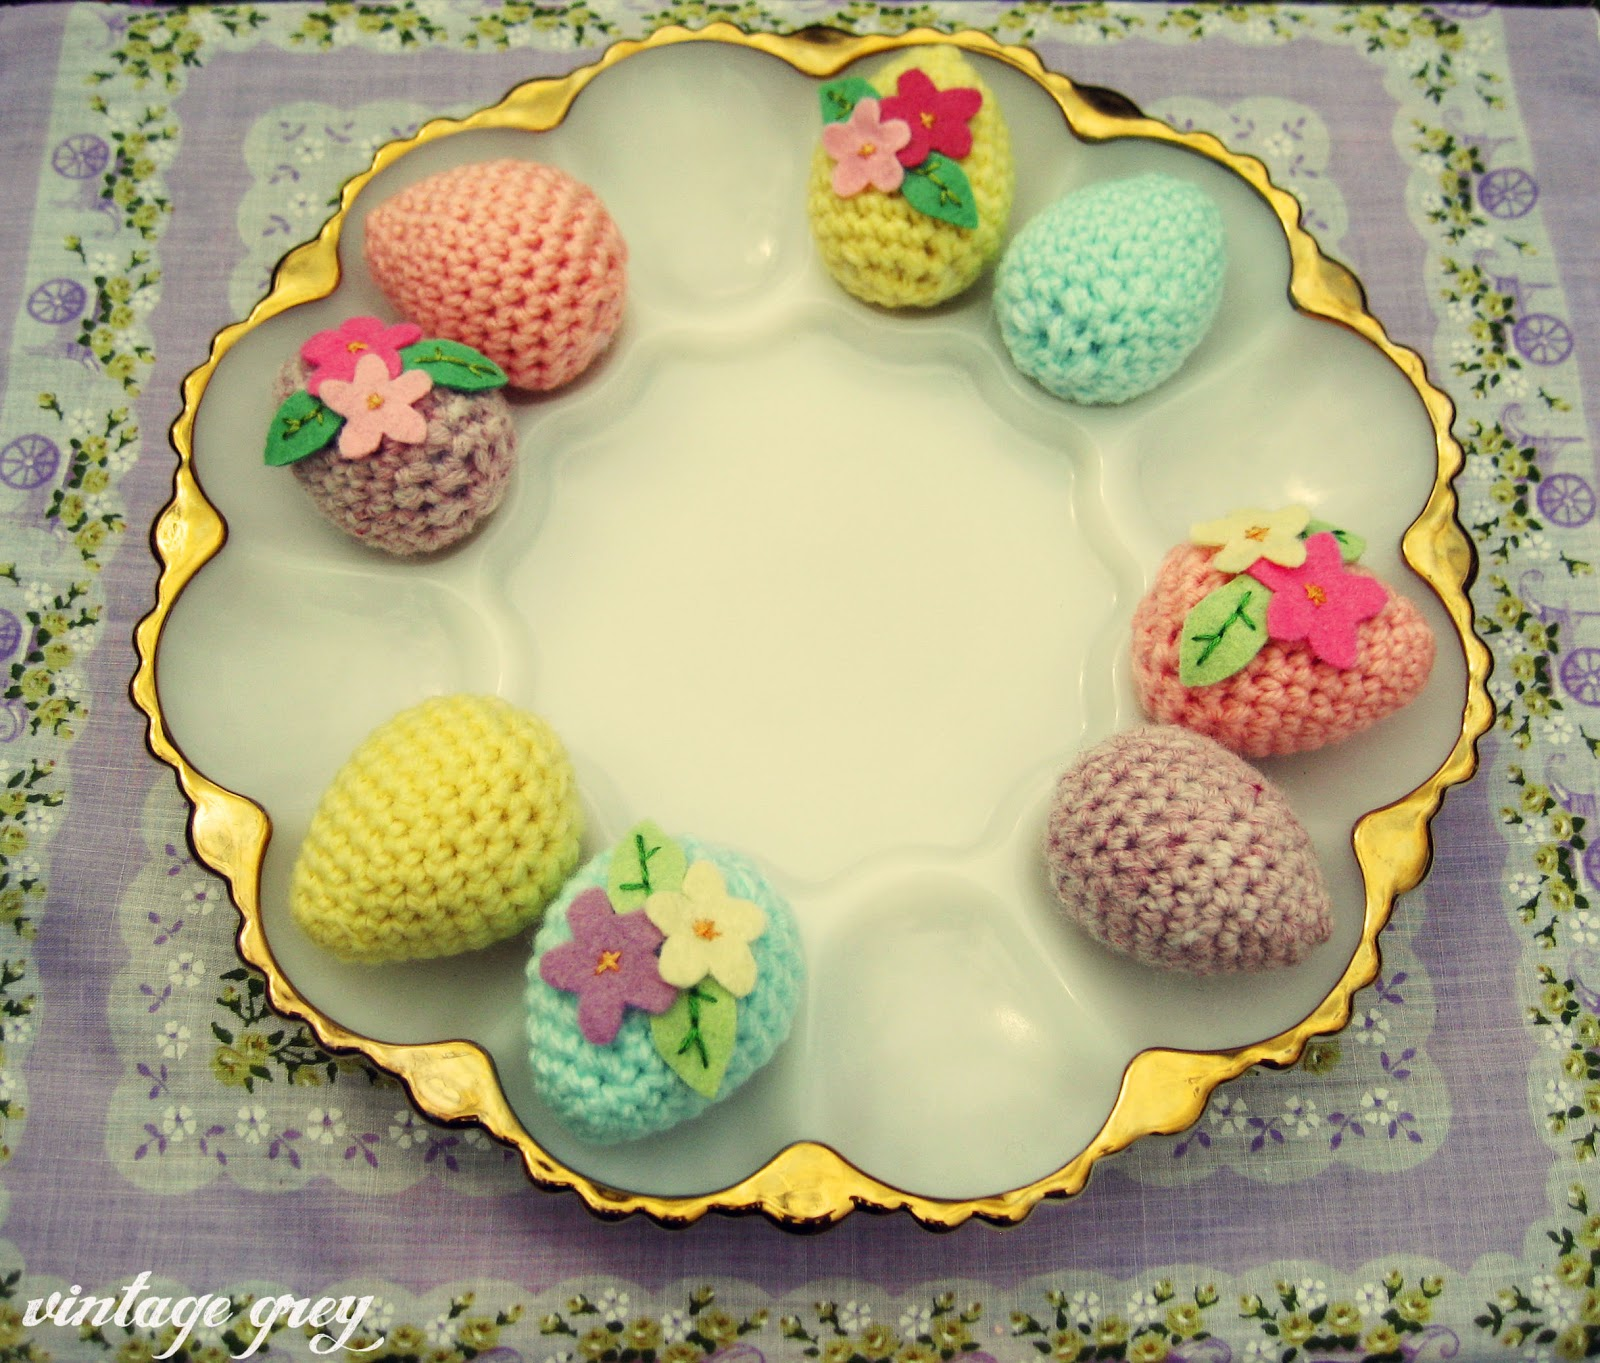 vintage grey: crocheted easter eggs